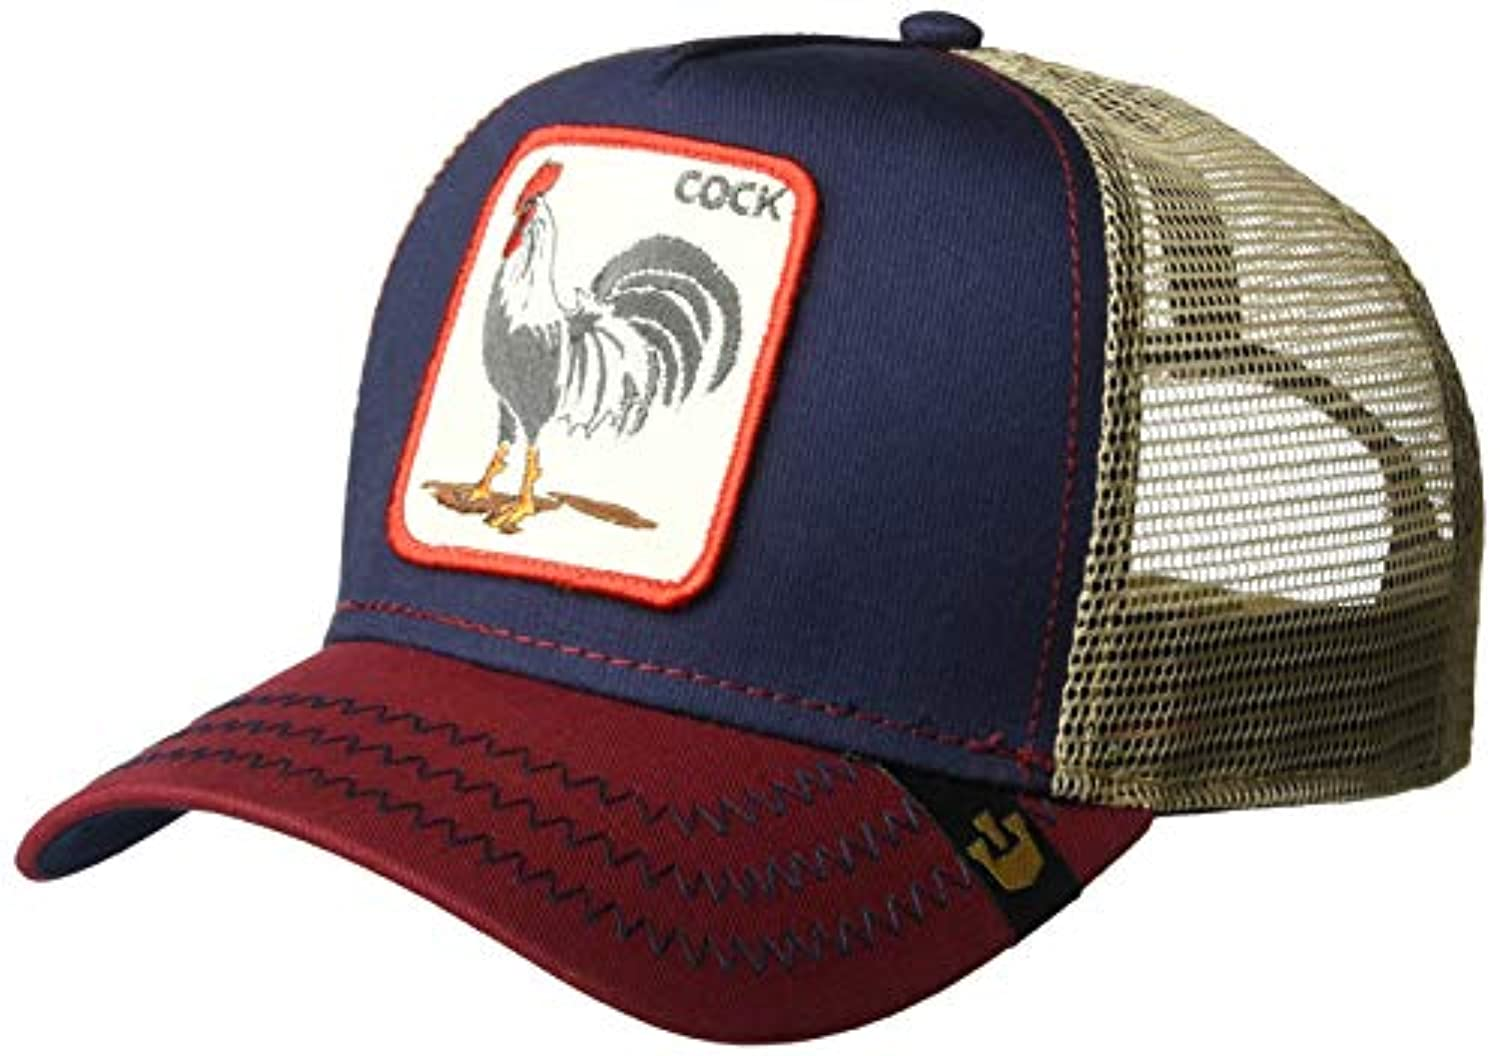 Classier: Buy Goorin Bros. Goorin Bros. Men's Animal Farm Snap Back Trucker Hat